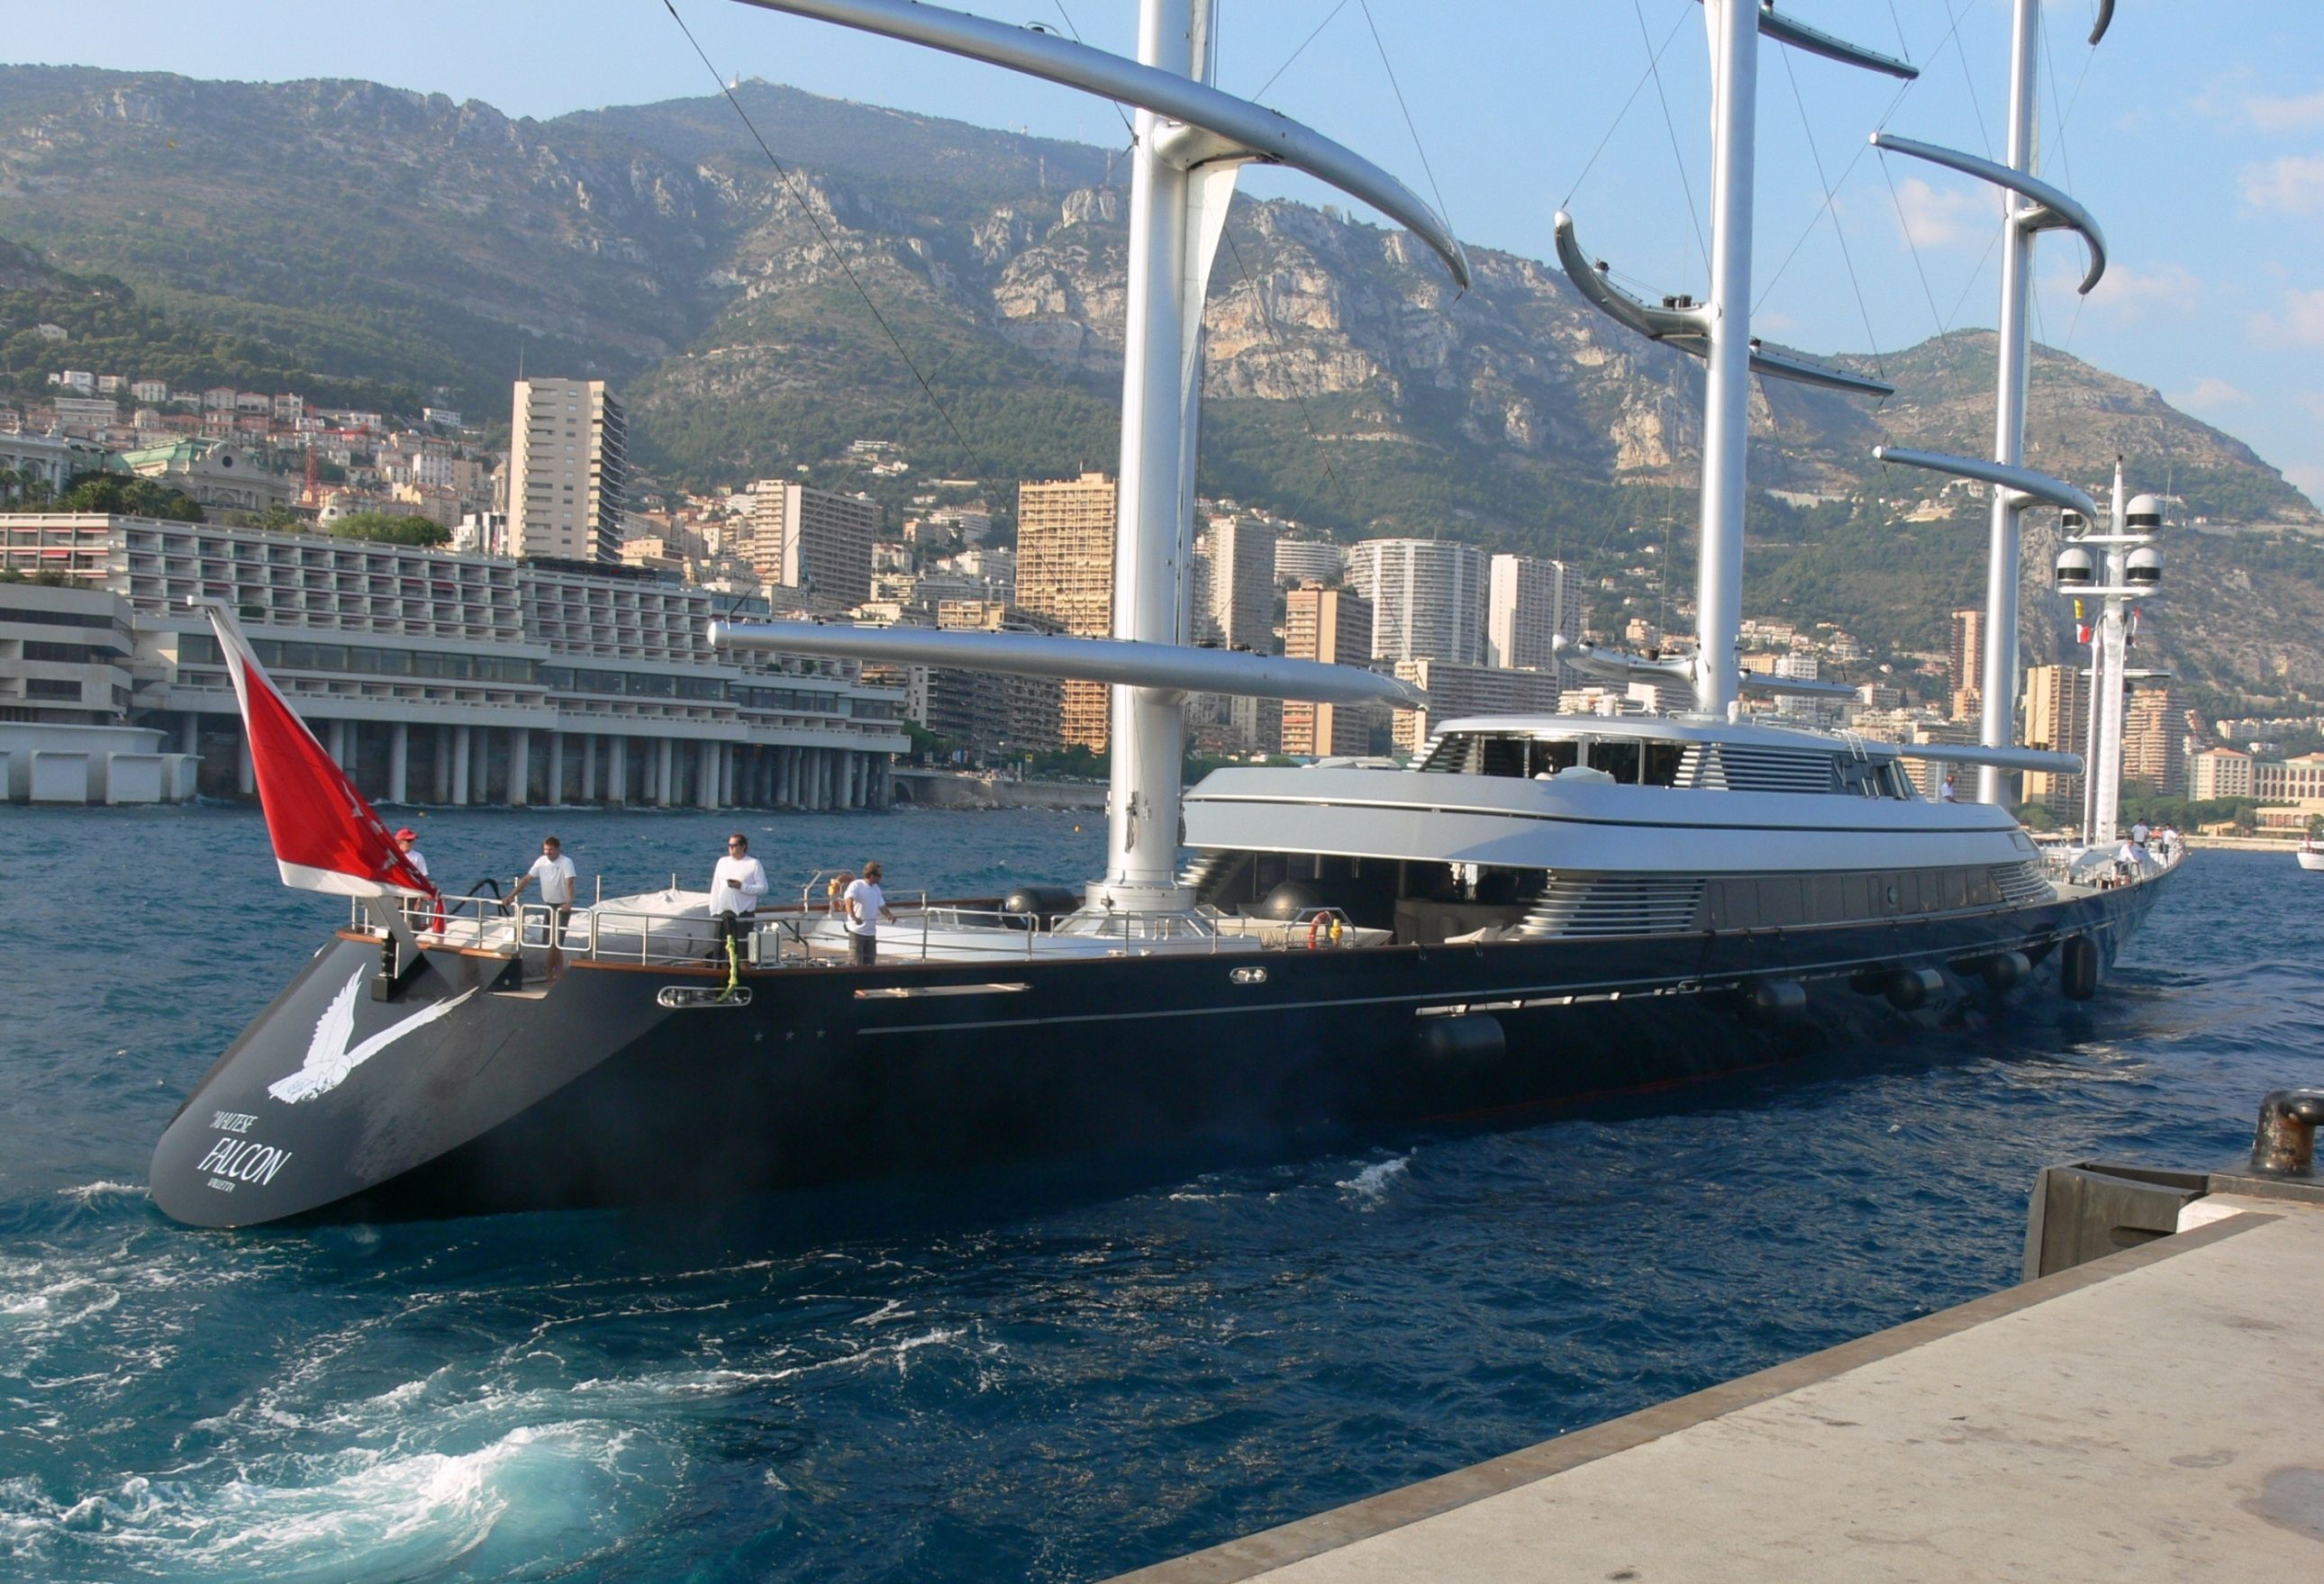 Maltese Falcon Yacht Yacht Maltese Falcon Seen Here Arriving In Monaco For The Yacht Show Yacht Sailboat Yacht Luxury Yachts